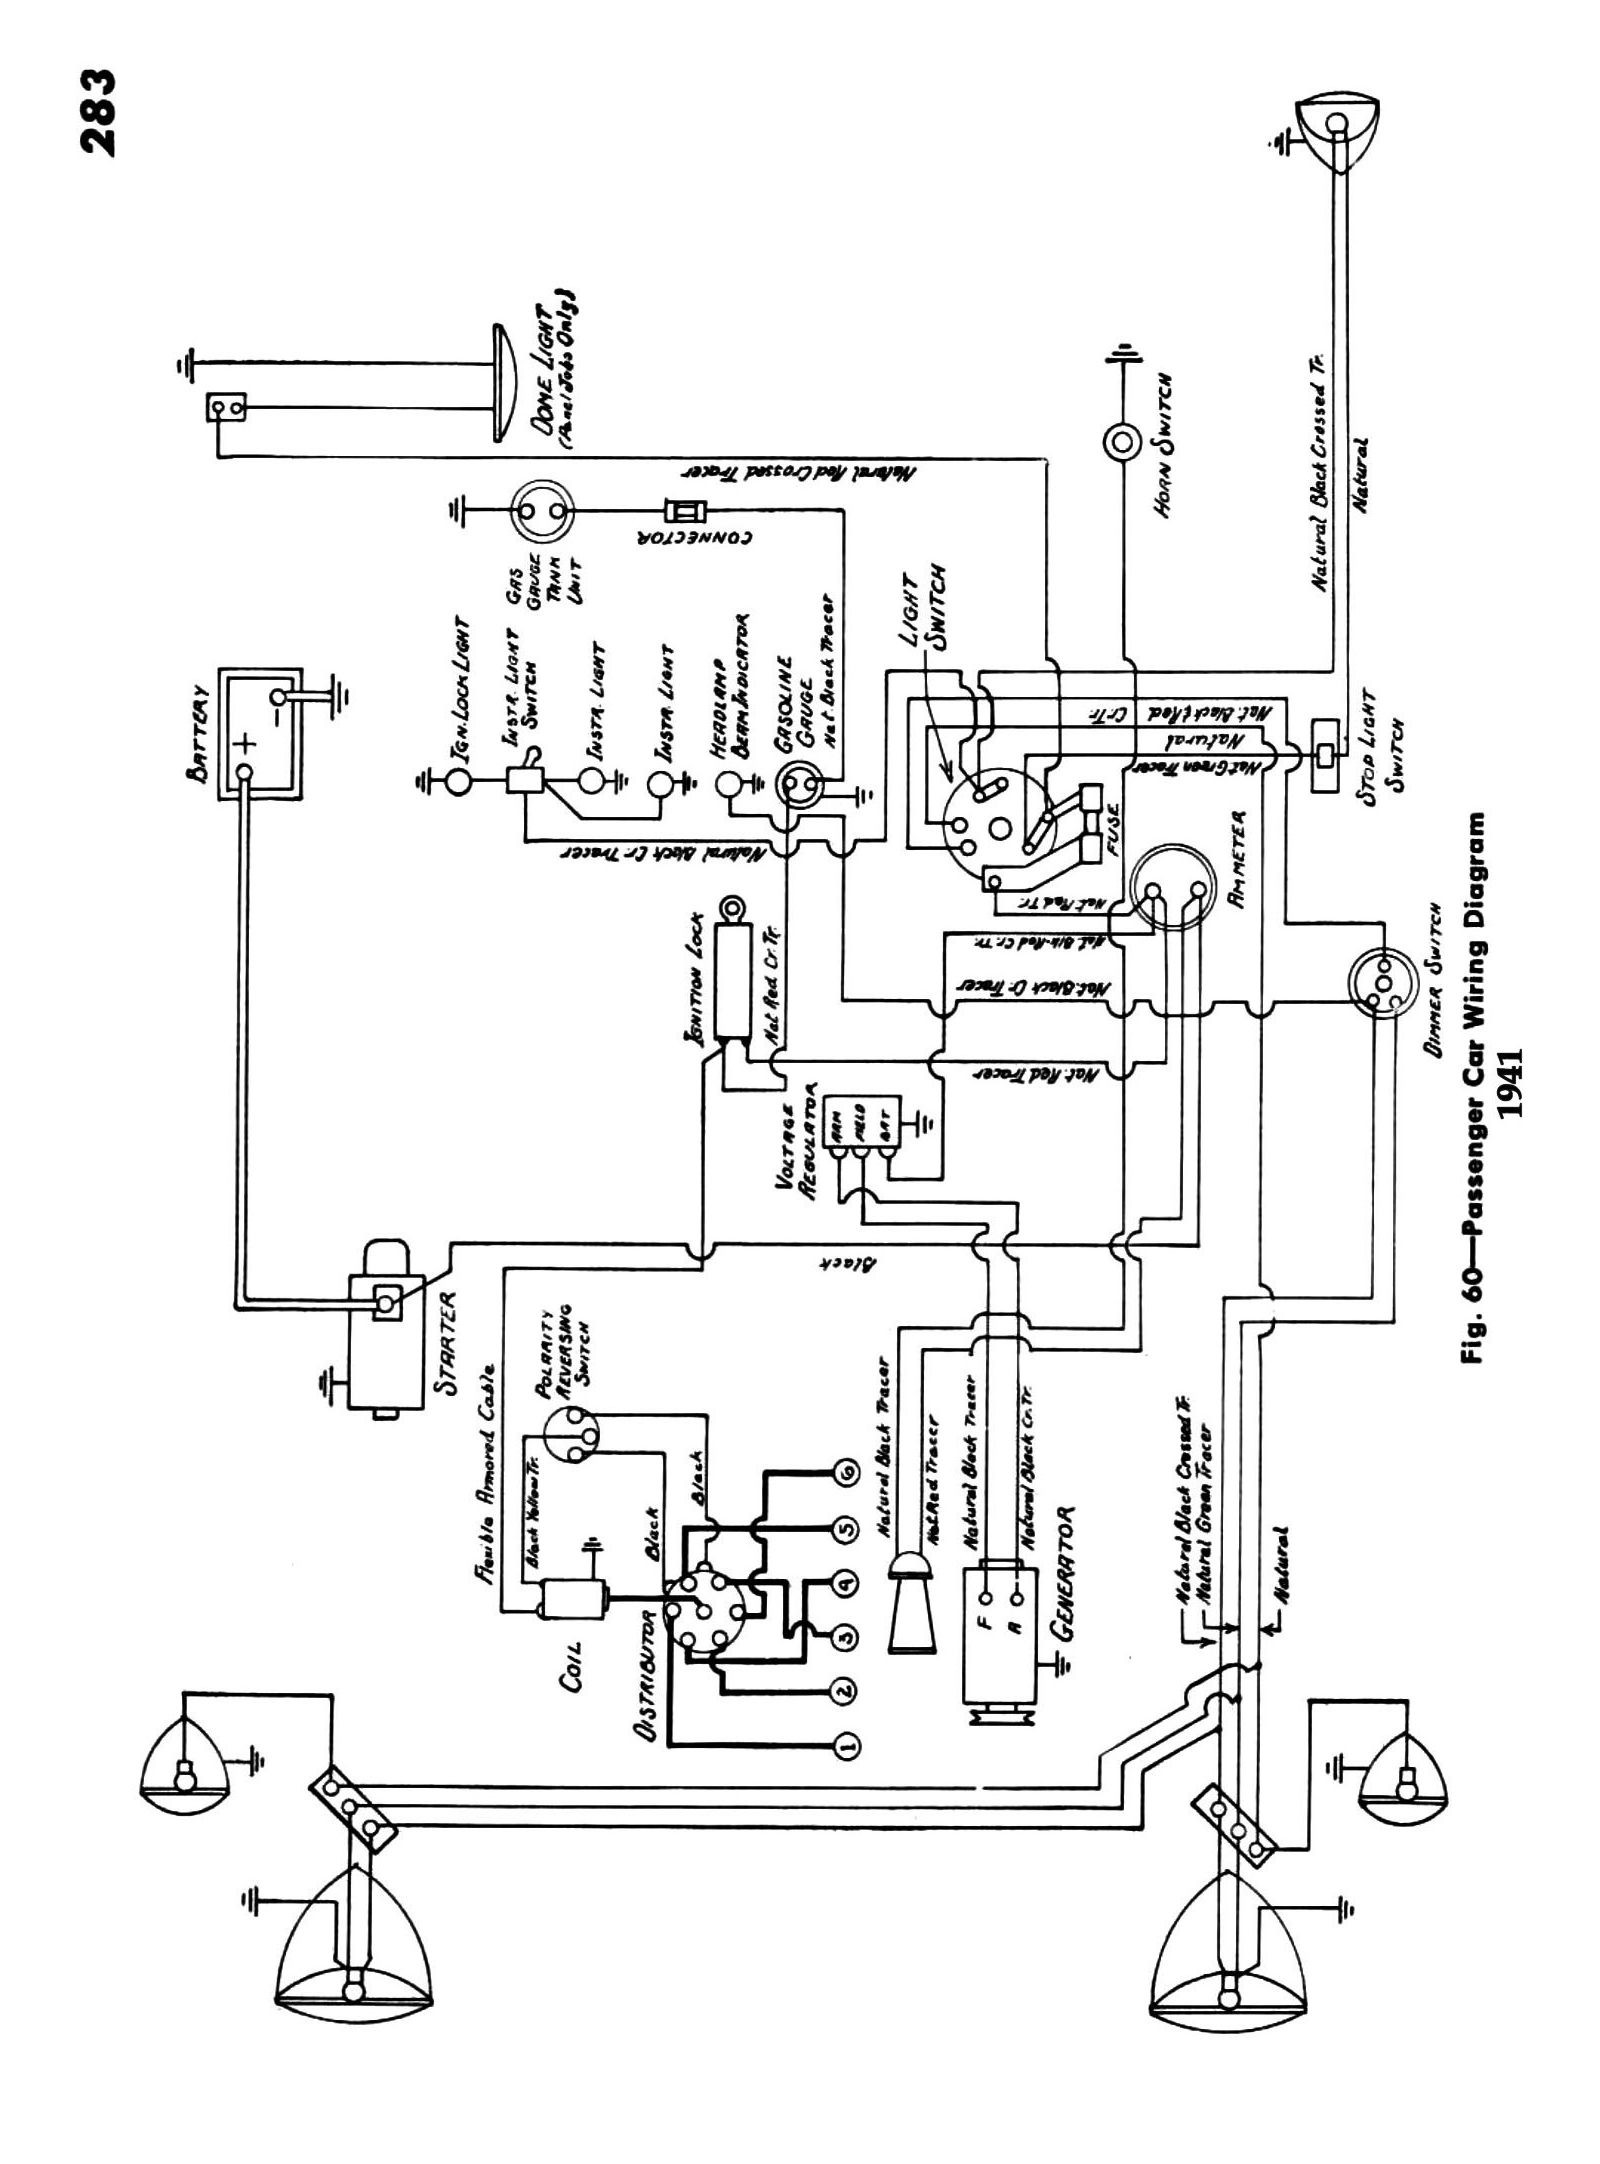 Chevrolet Truck Parts Diagram 1988 Chevy C2500 Wiring Diagrams Of